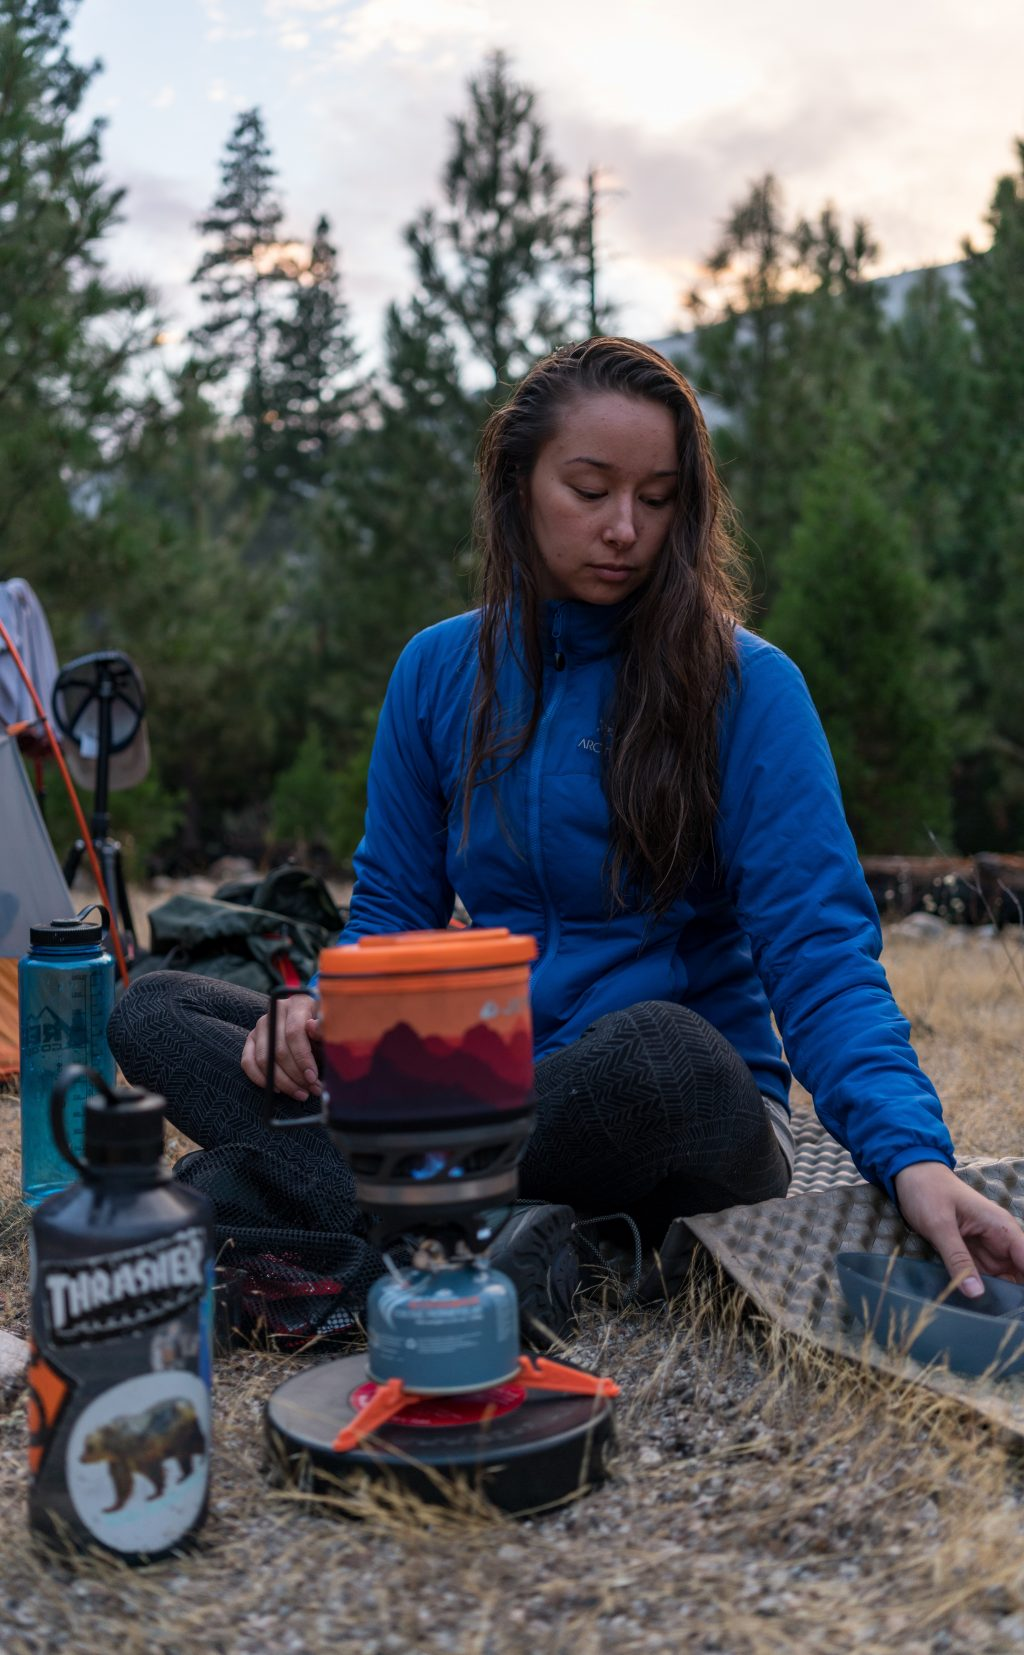 jetboil-zip-vs-flash-camp-stove-comparison